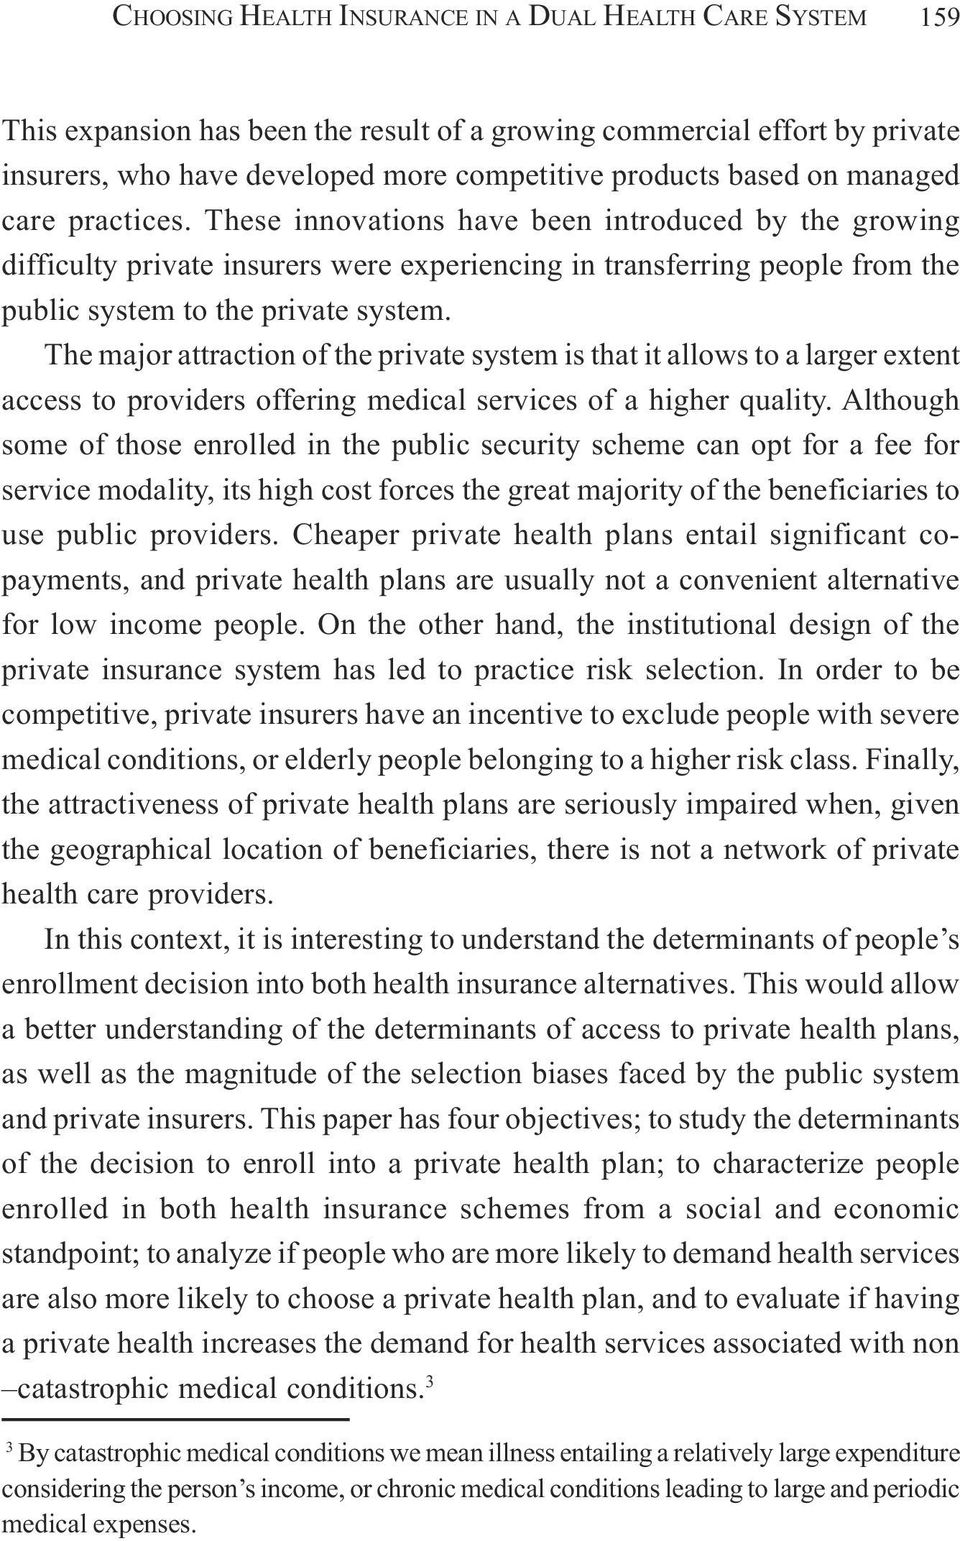 The major attraction of the private system is that it allows to a larger extent access to providers offering medical services of a higher quality.